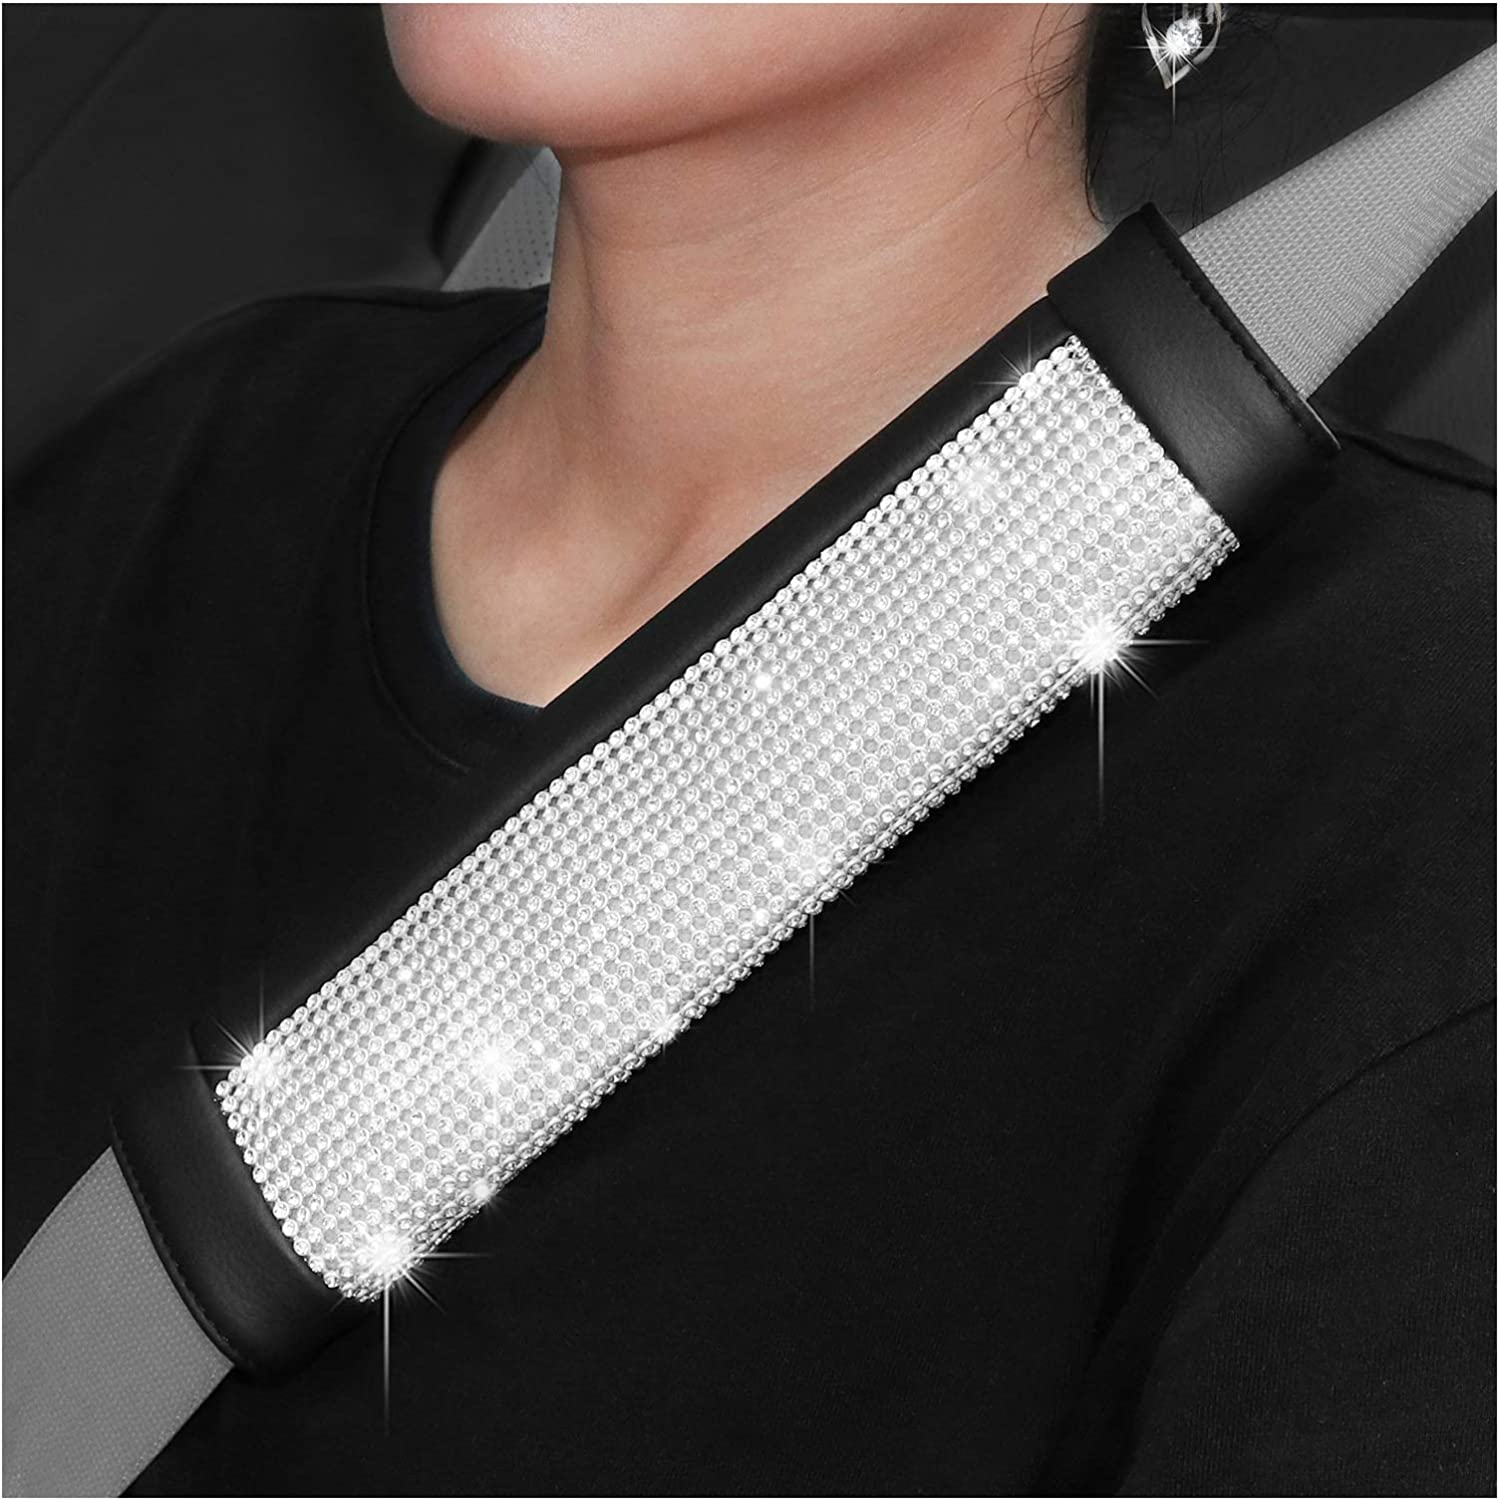 SEG Direct Diamond Seat Belt Pads Pack of 2 Black Microfiber Leather with Inlaid Silver Bling Bling Rhinestones